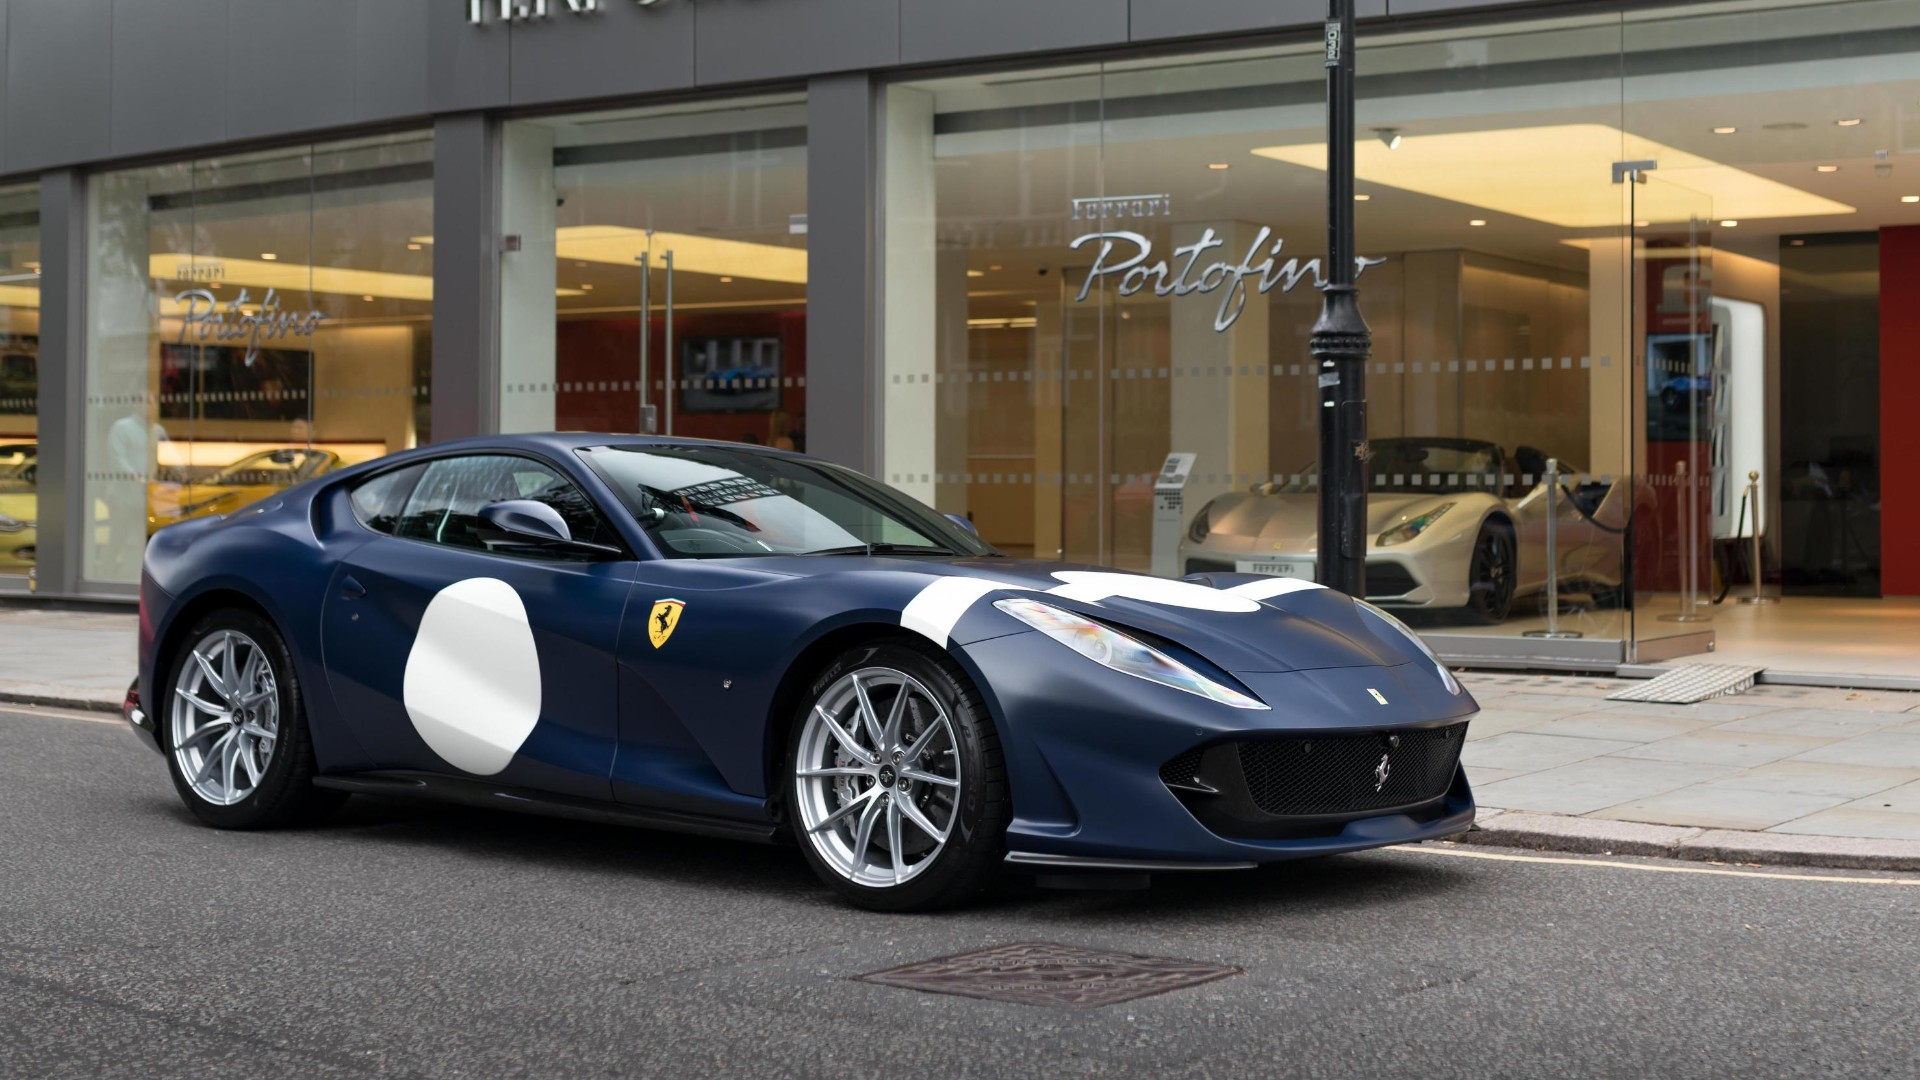 Ferrari and Porsche are the most financed supercar marques in London